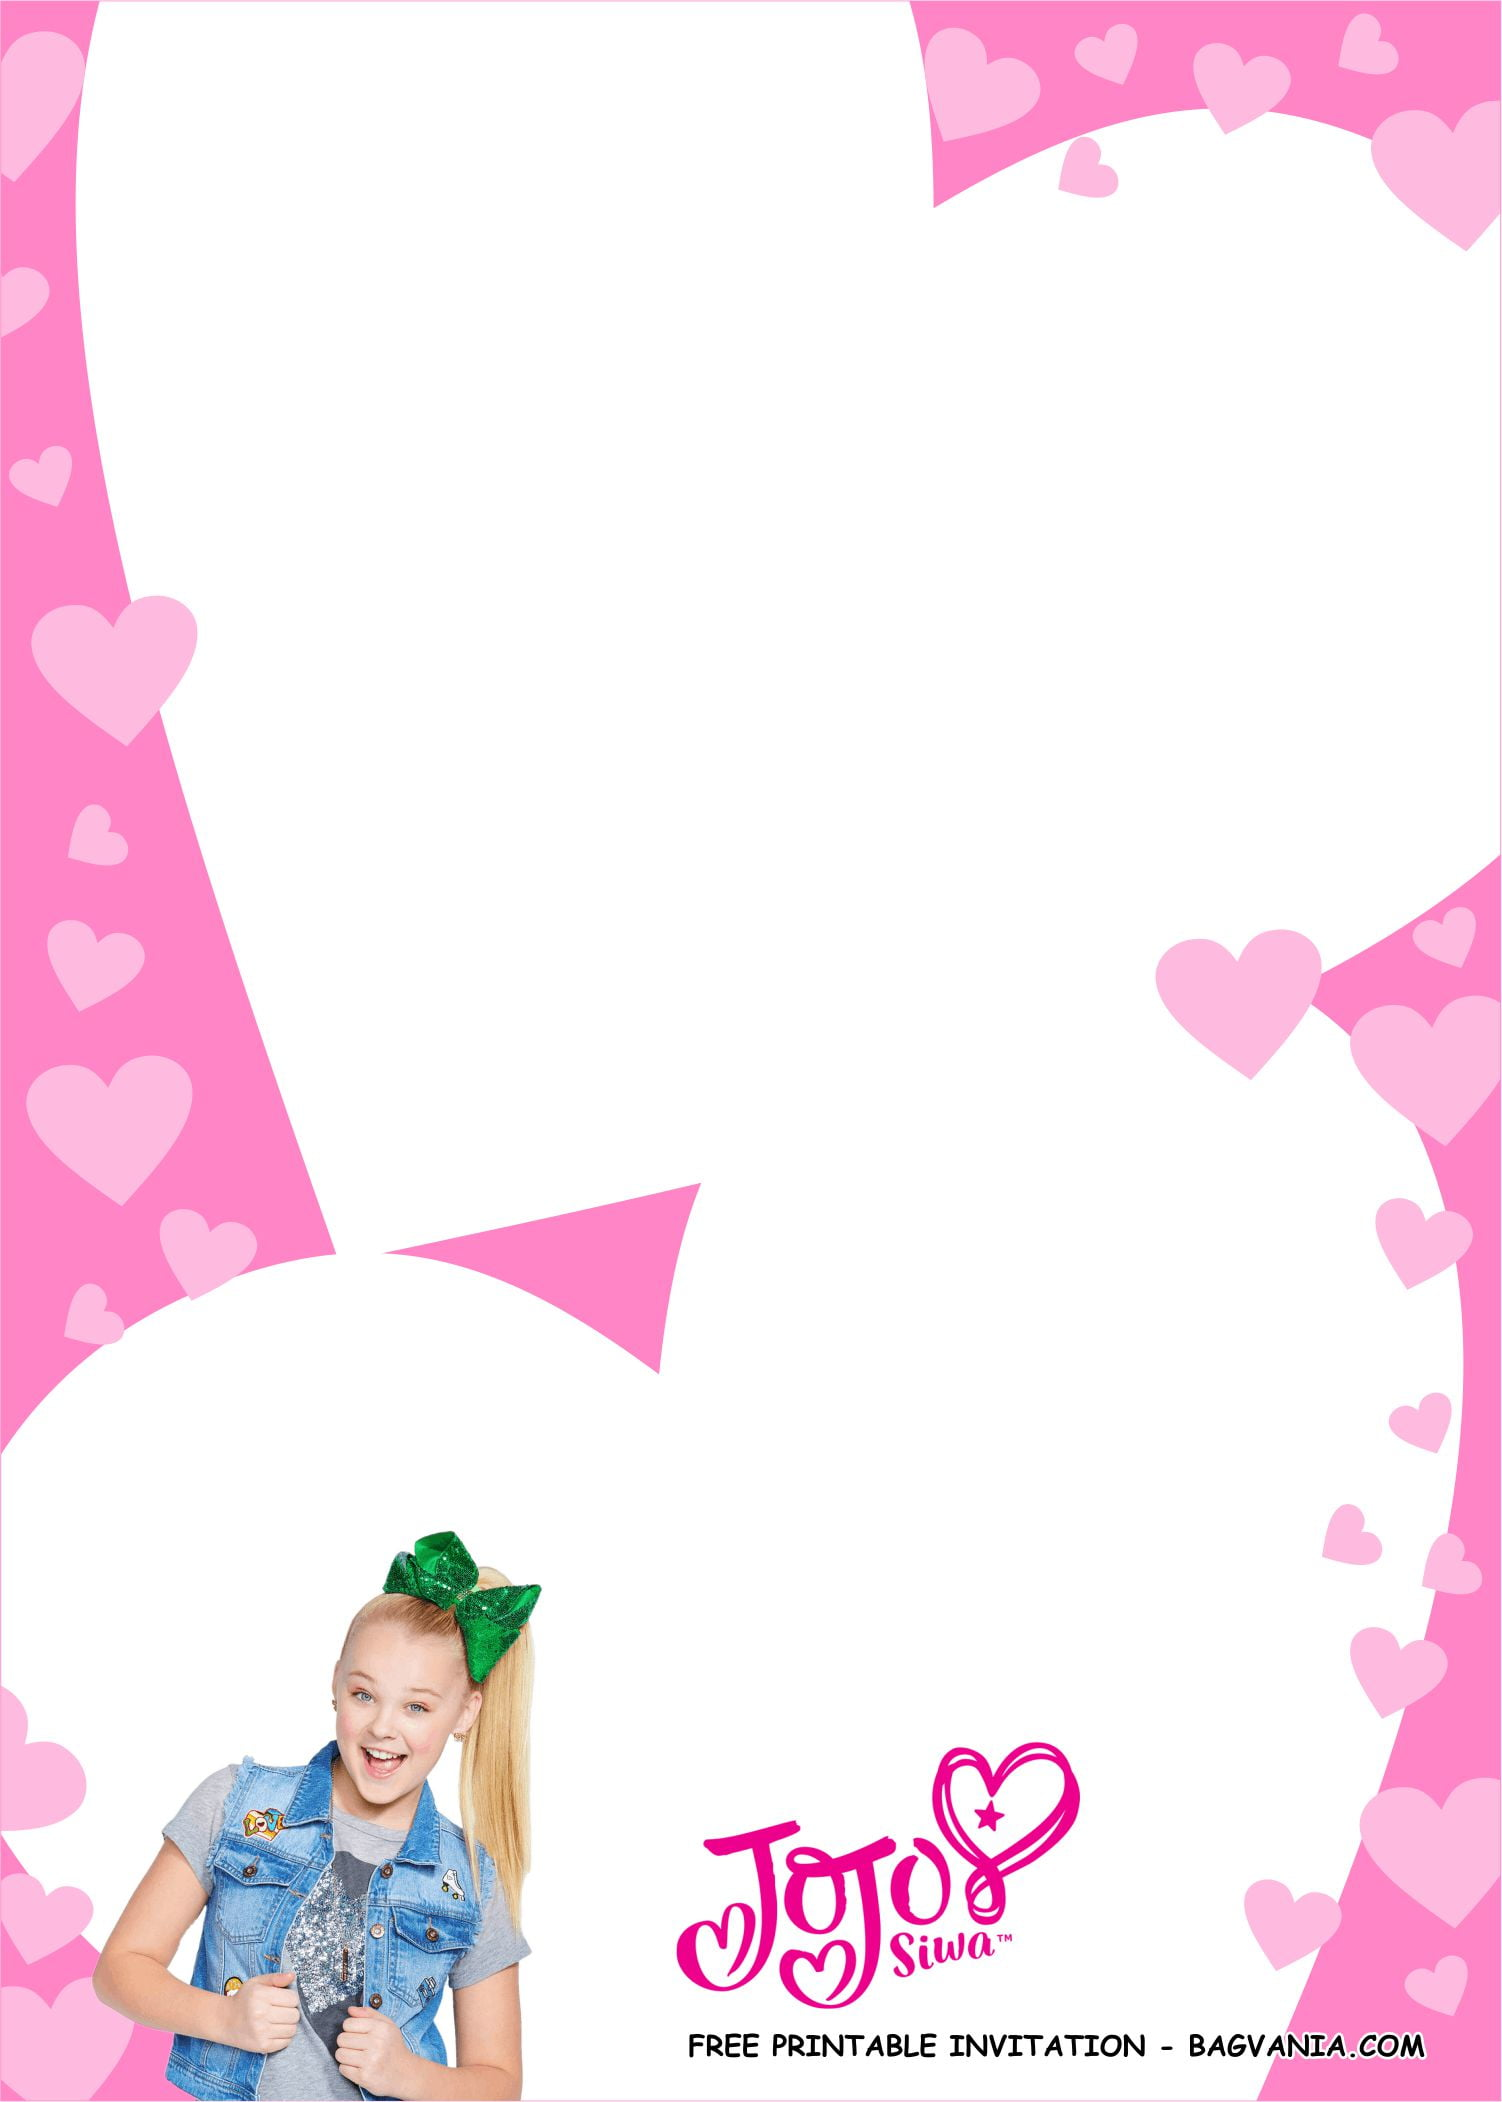 jojo siwa invitation templates 1 free